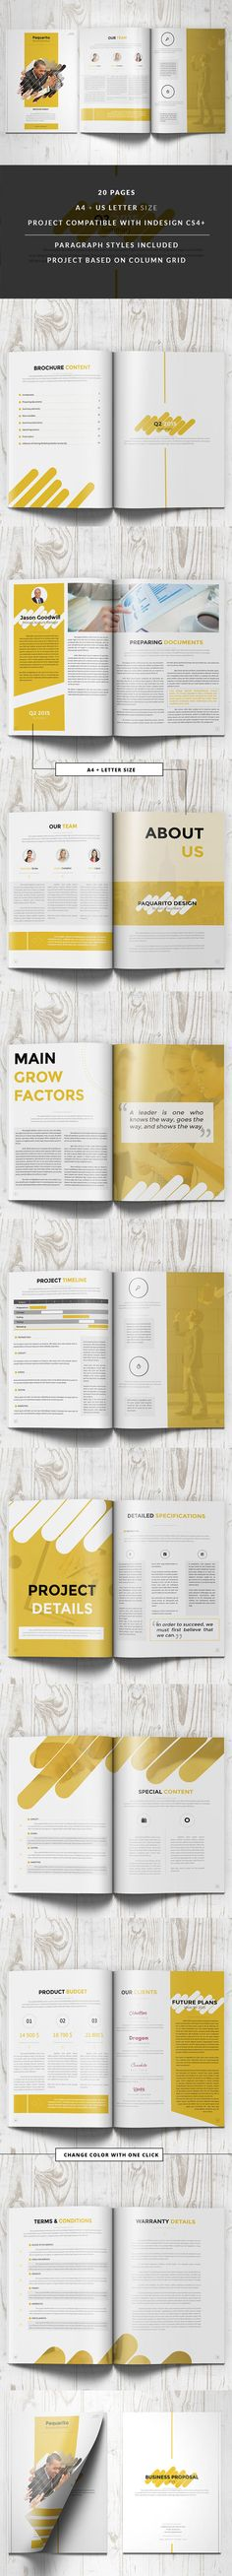 Pin By Karla Morloy On Templates Pinterest Annual Reports